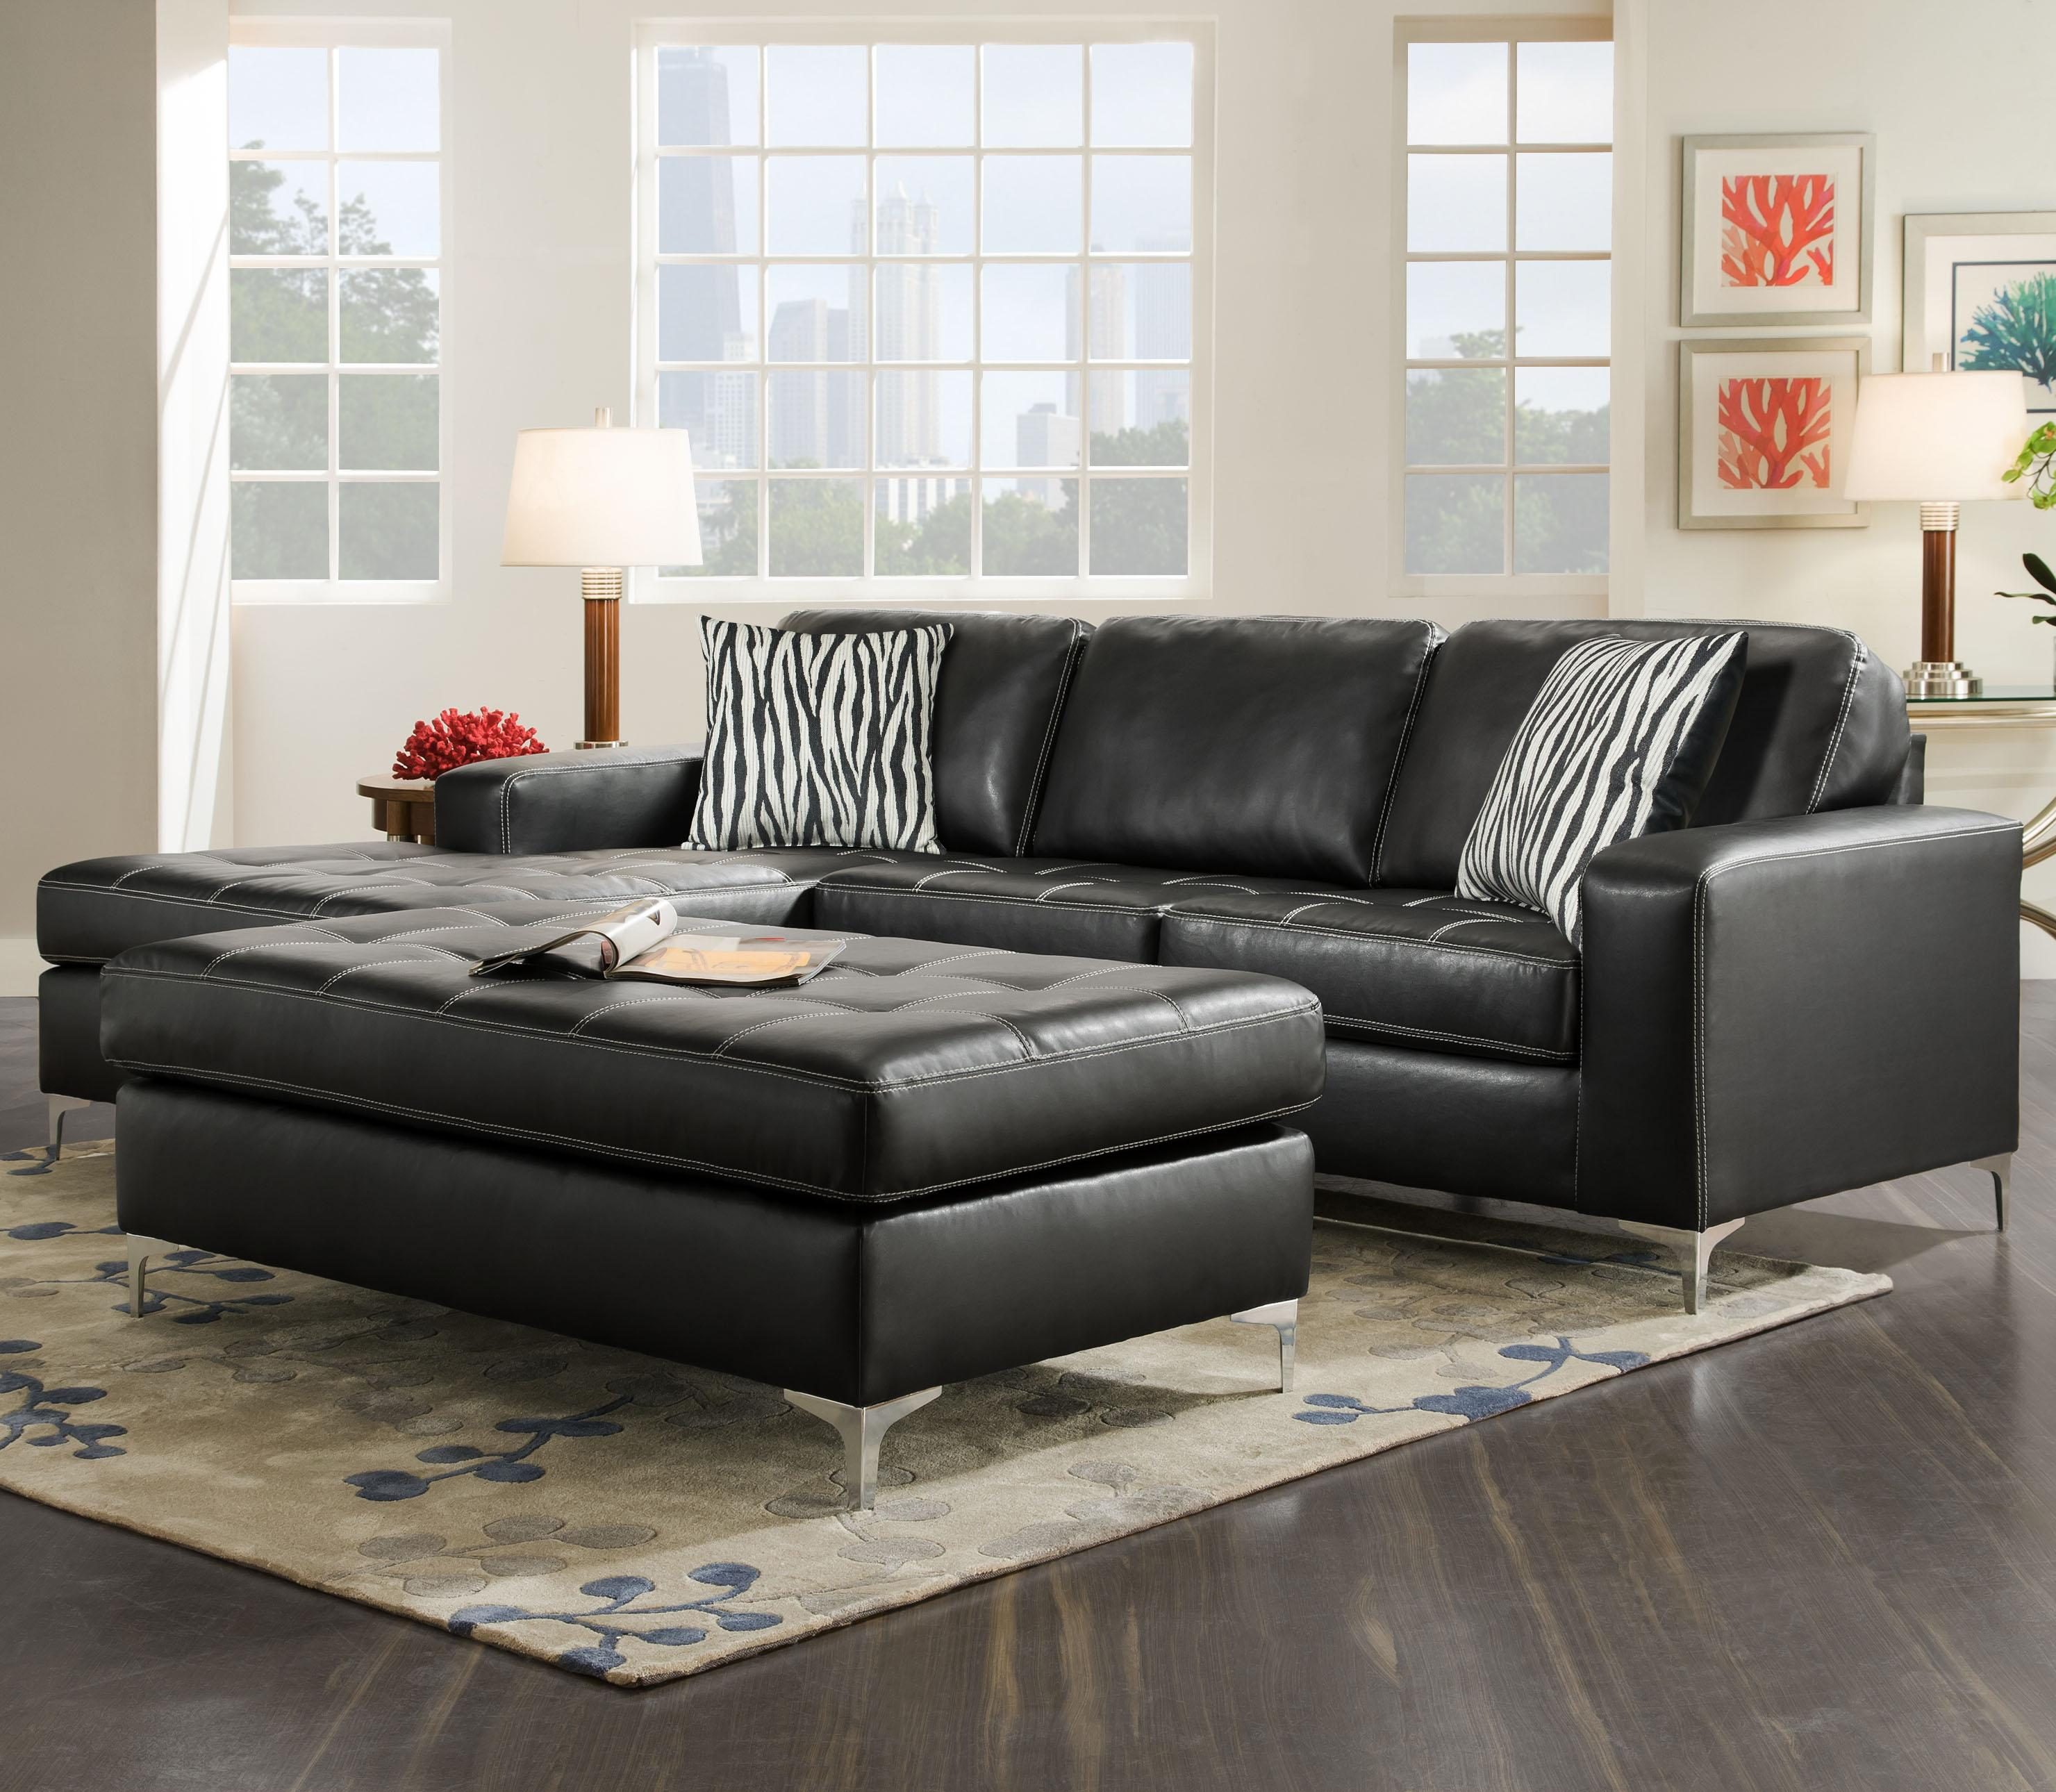 American Furniture 7400 Three Seat Sectional with Left Side Chaise - Item Number: 7430+20-8811